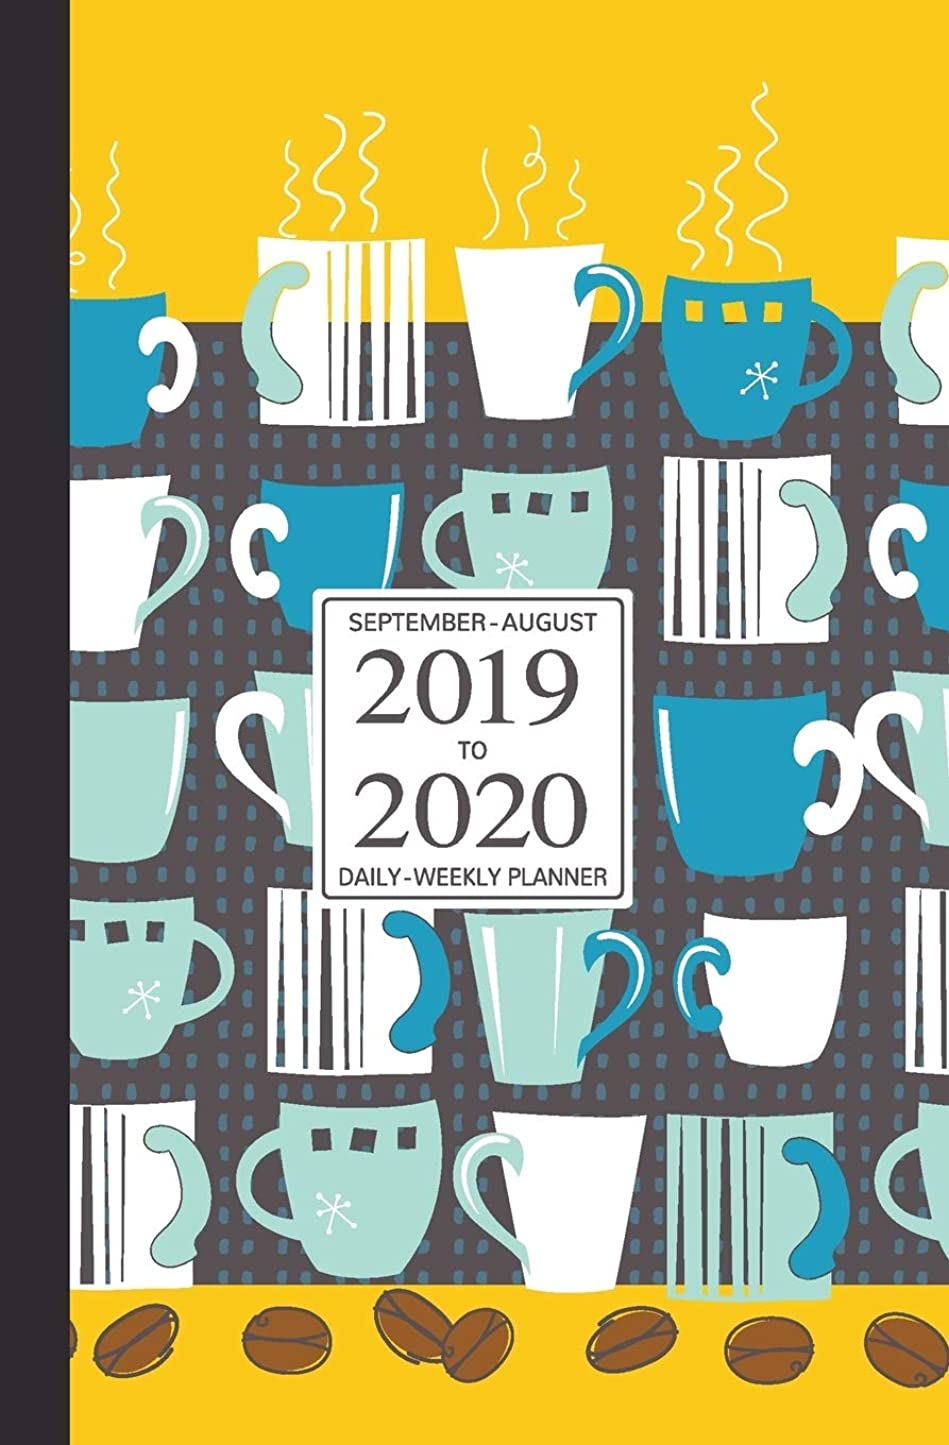 September - August 2019 To 2020 Daily - Weekly Planner: Mini Student Calendar; Cute Coffee Cup Art